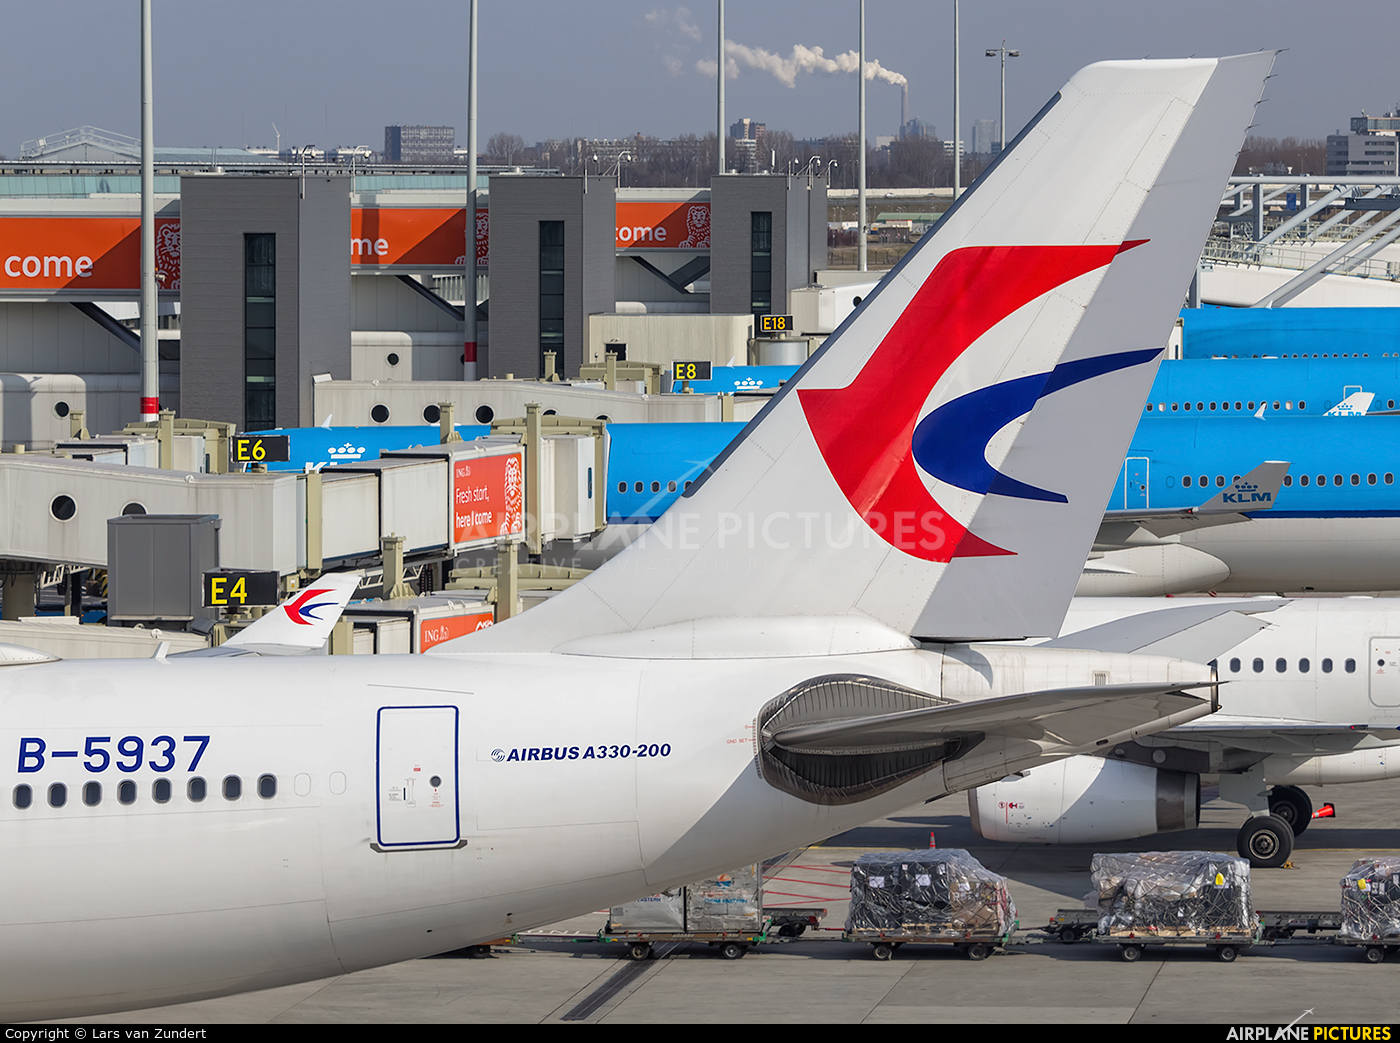 China Eastern Airlines B-5937 aircraft at Amsterdam - Schiphol